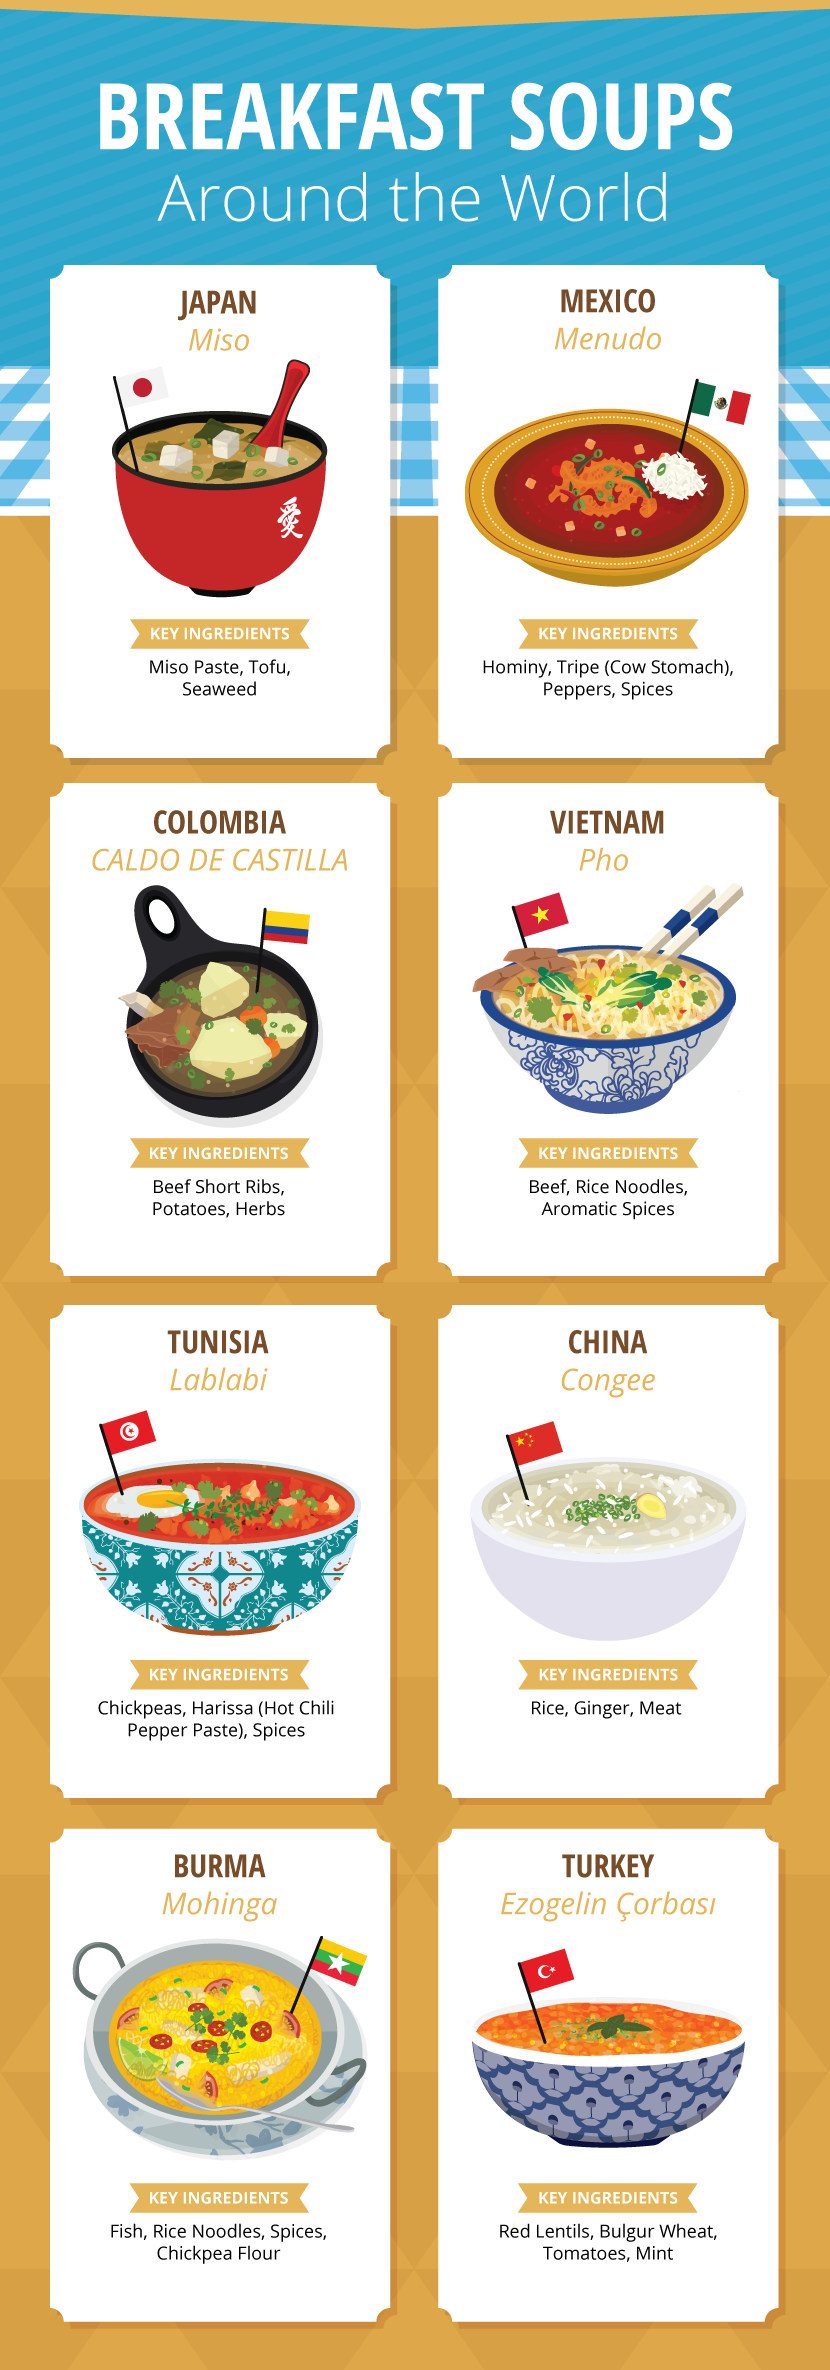 Breakfast Soups Around the World - Welcome Soup to the Breakfast Table